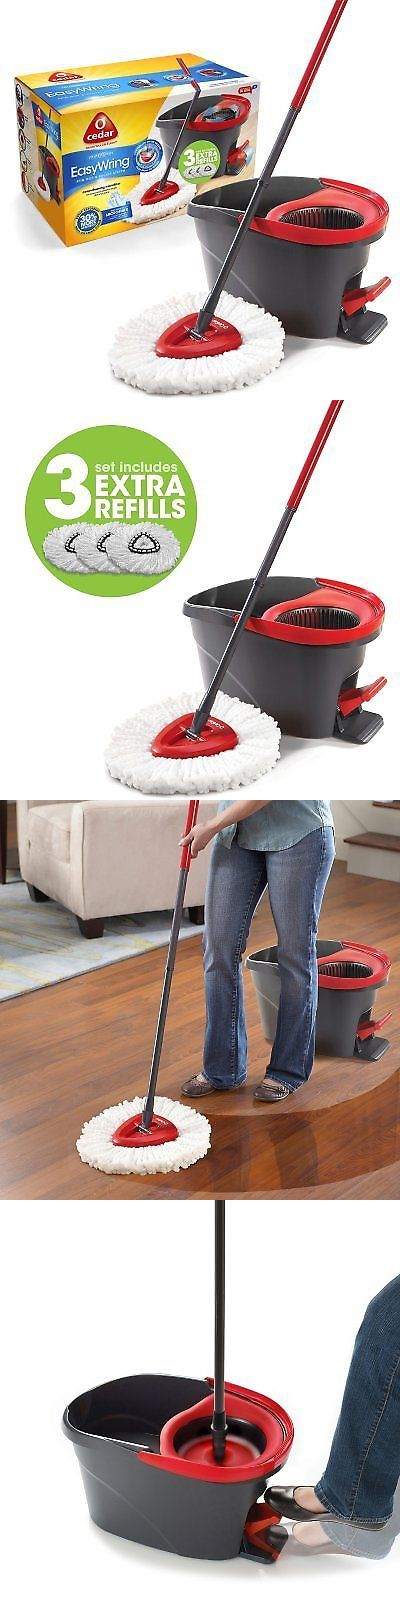 Mops and Brooms 20607: O-Cedar Easy Wring Spin Mop Bucket System With 3 Extra Refills New Free Shipping -> BUY IT NOW ONLY: $46.86 on eBay!